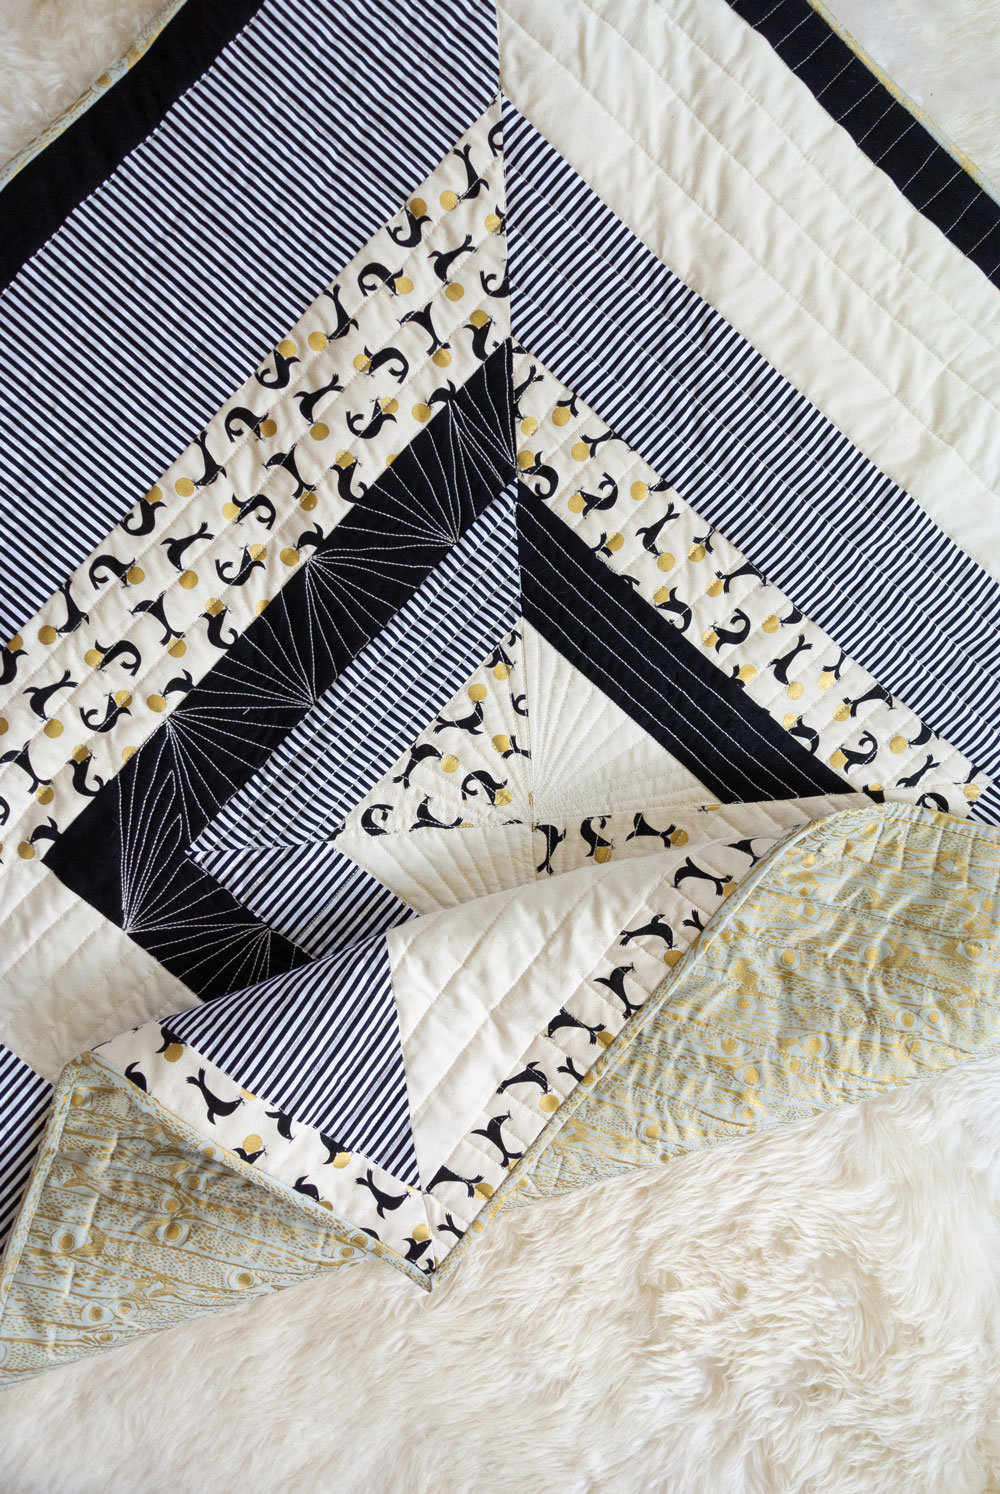 The Reflections quilt pattern is a beginner-friendly modern design that includes king, queen, full, twin, throw and baby quilt sizes. This is a fast and fun baby quilt pattern that plays on symmetry and high contrast!